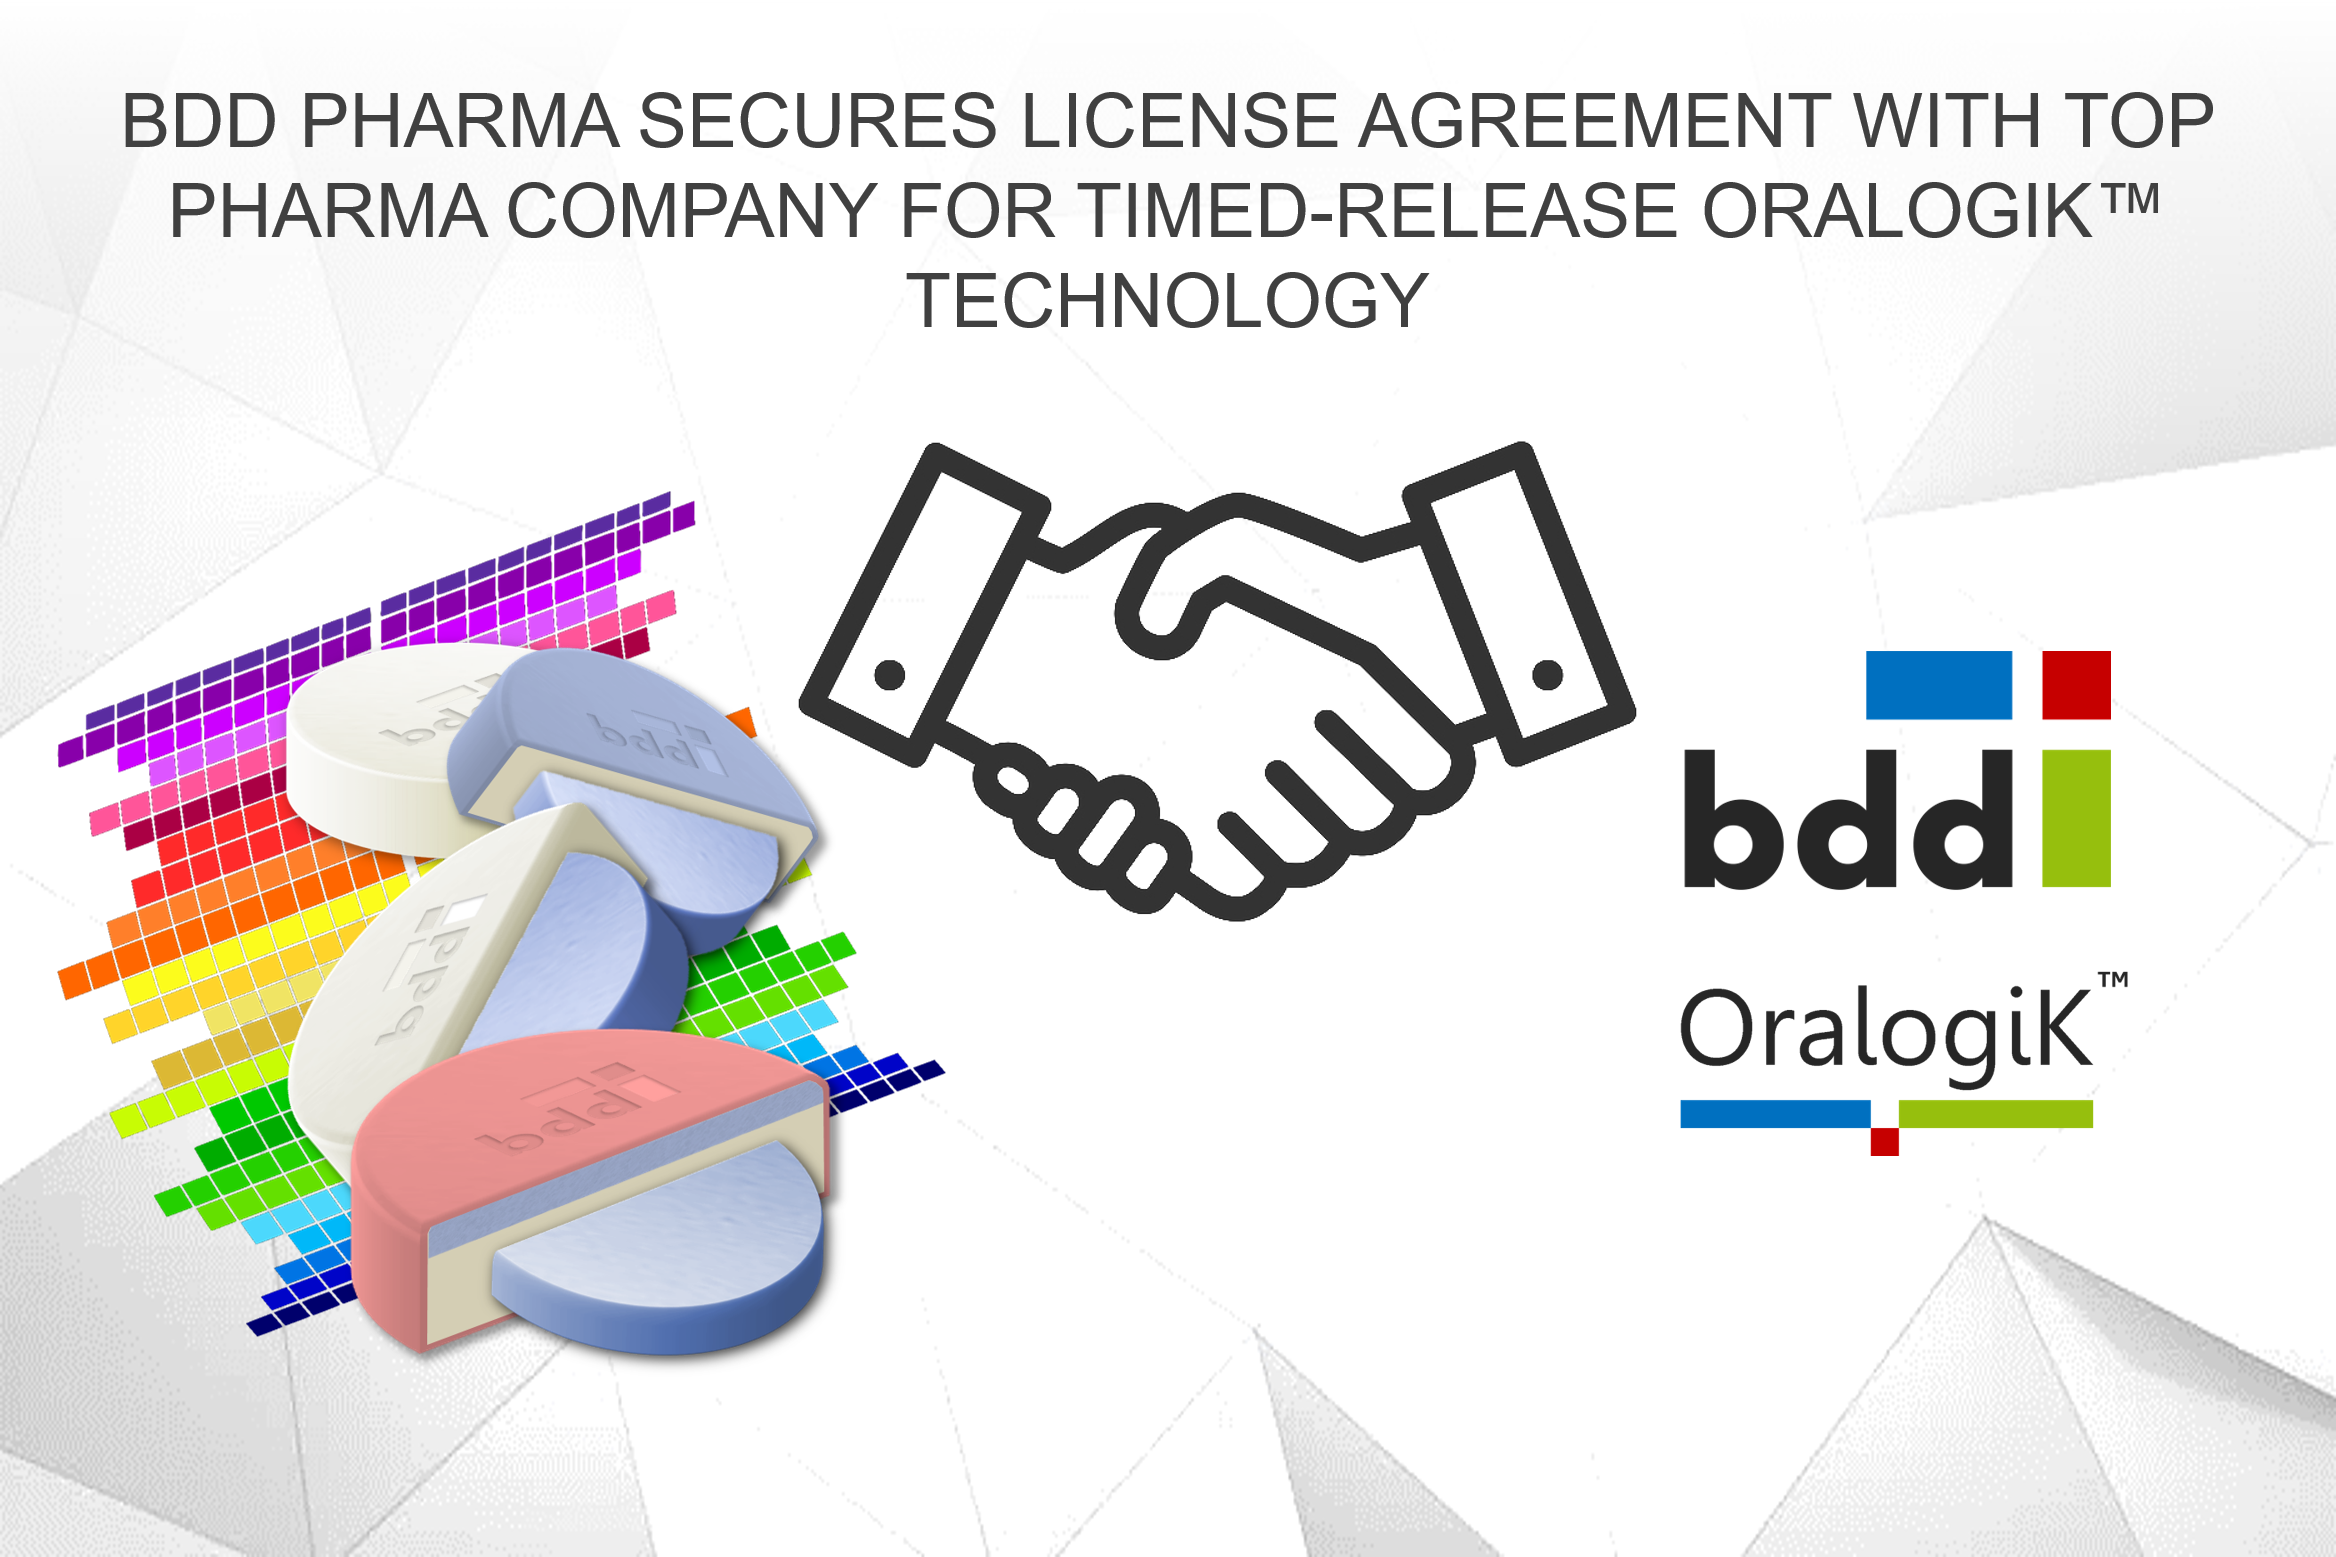 Bdd Pharma Secures License Agreement With Top Pharma Company For